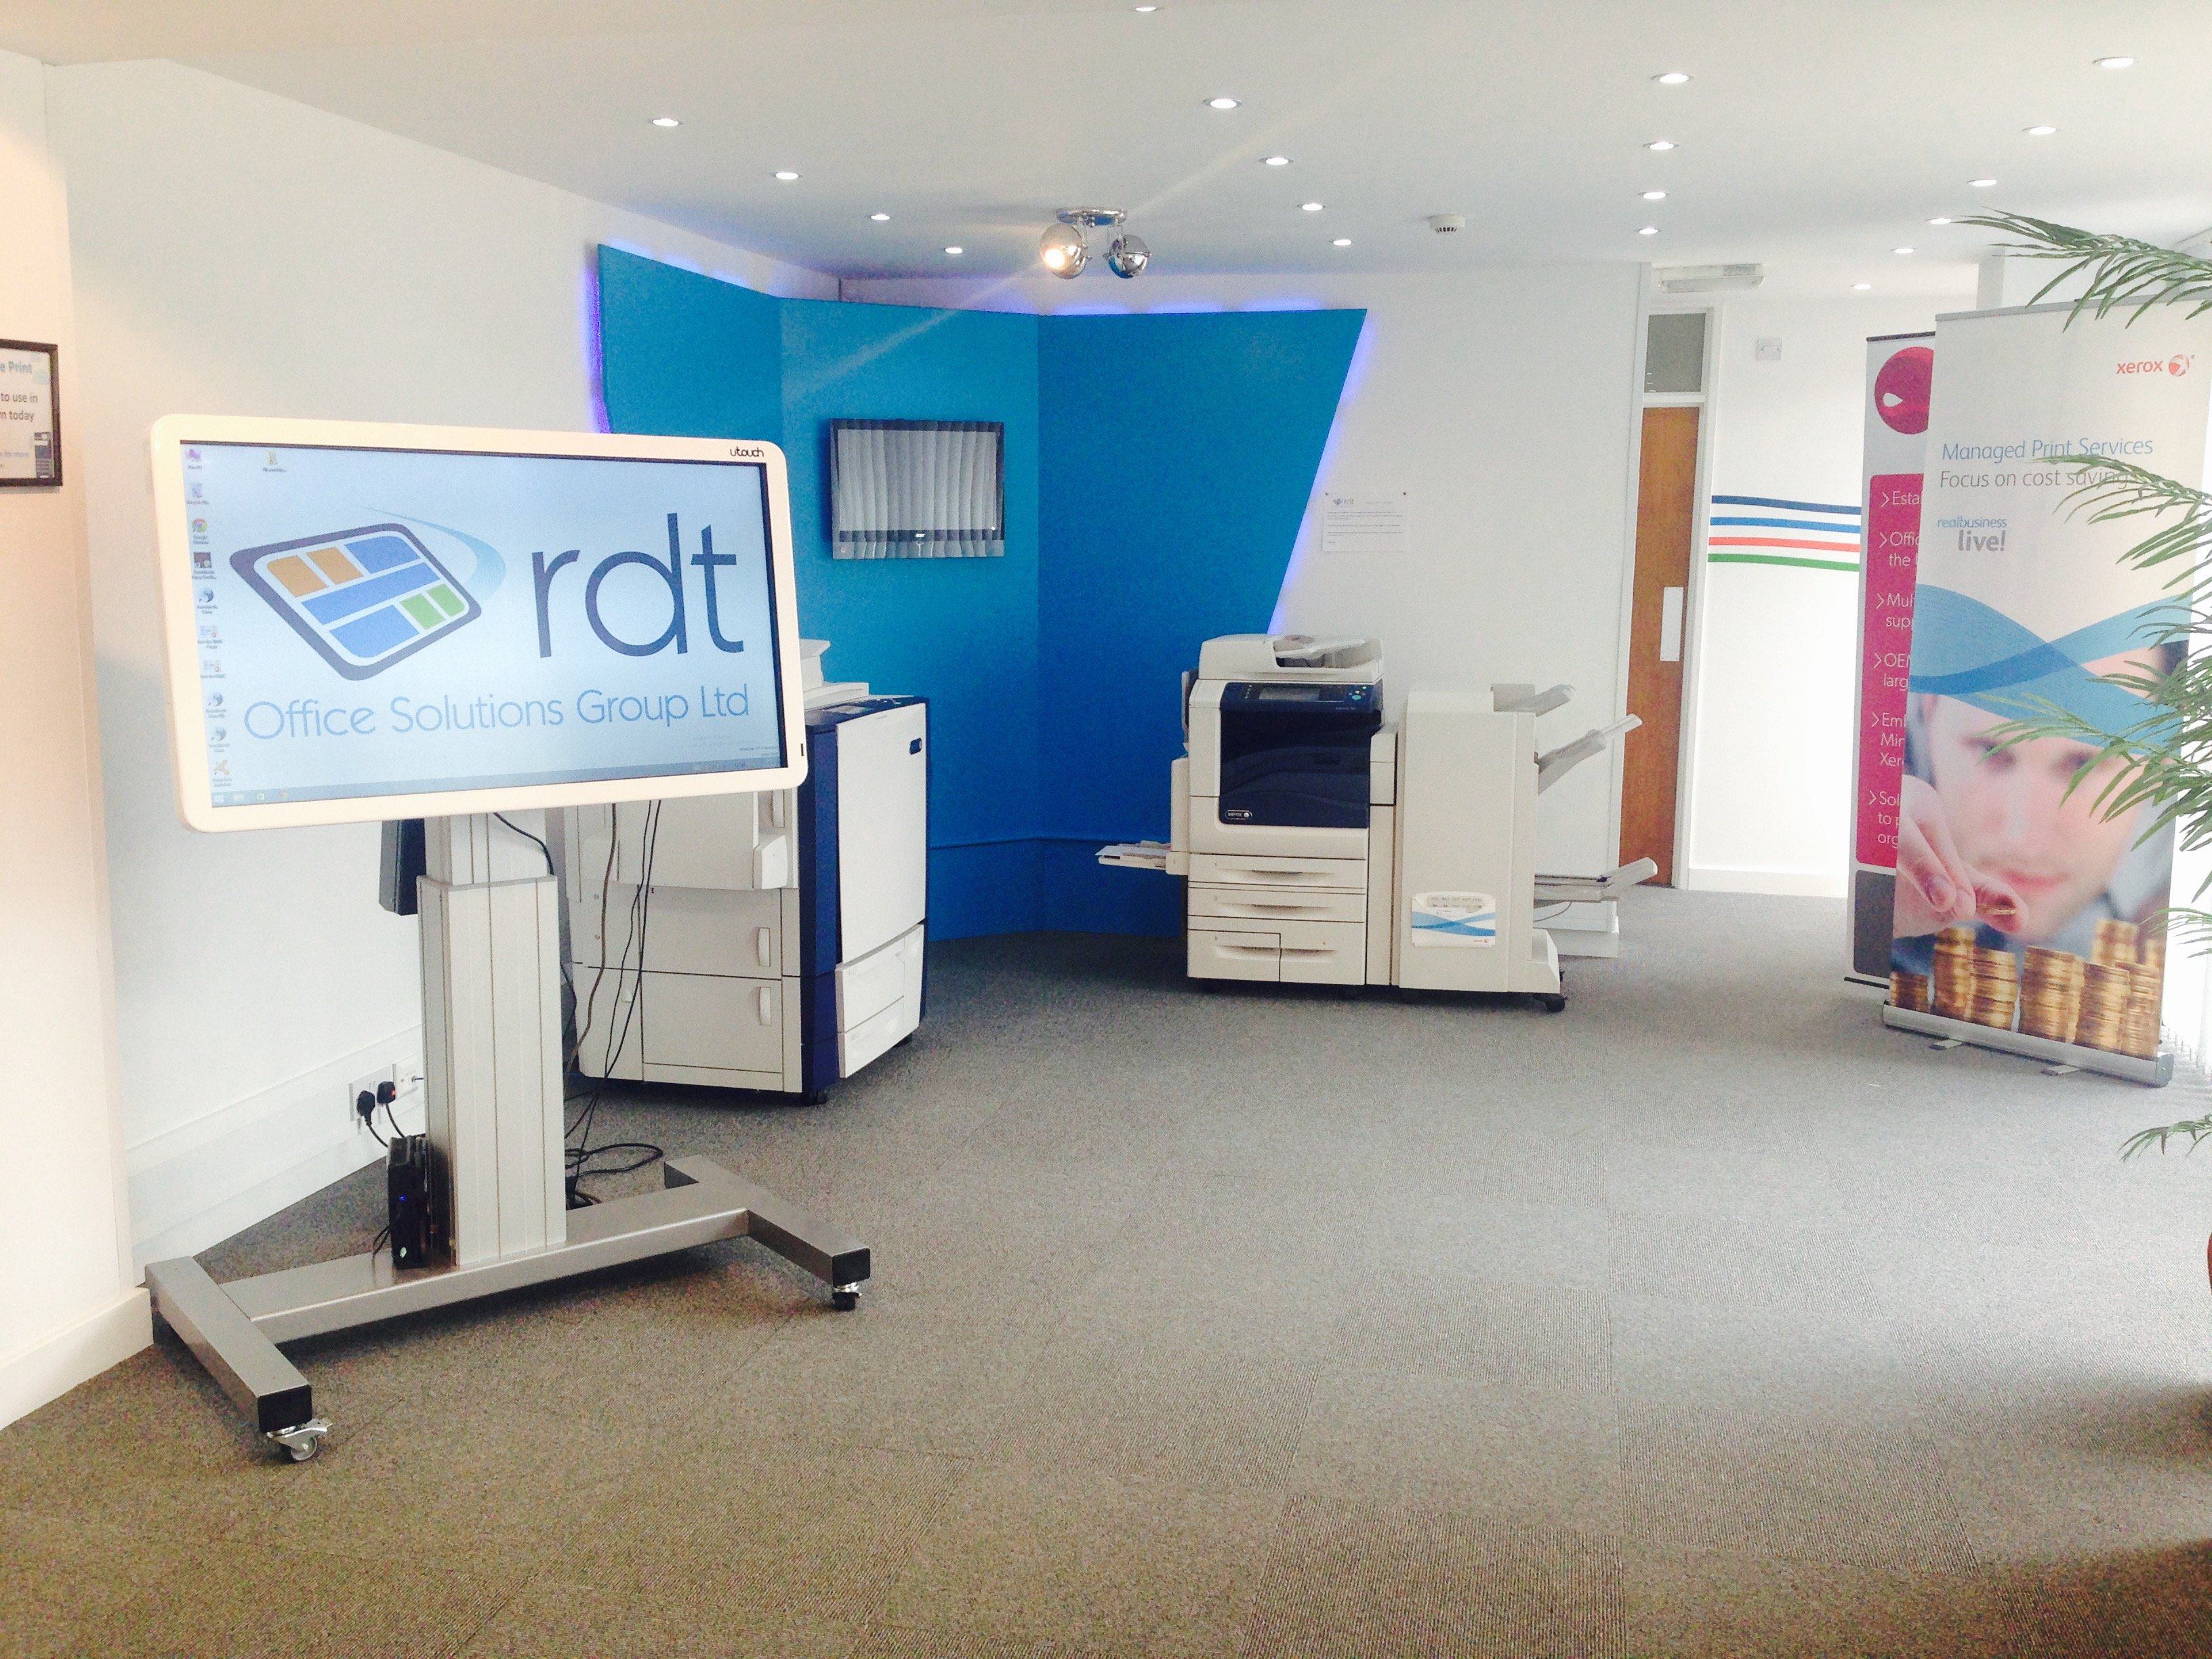 RDT Office Solutions Group was established in 2002 by CEO Derek Russell